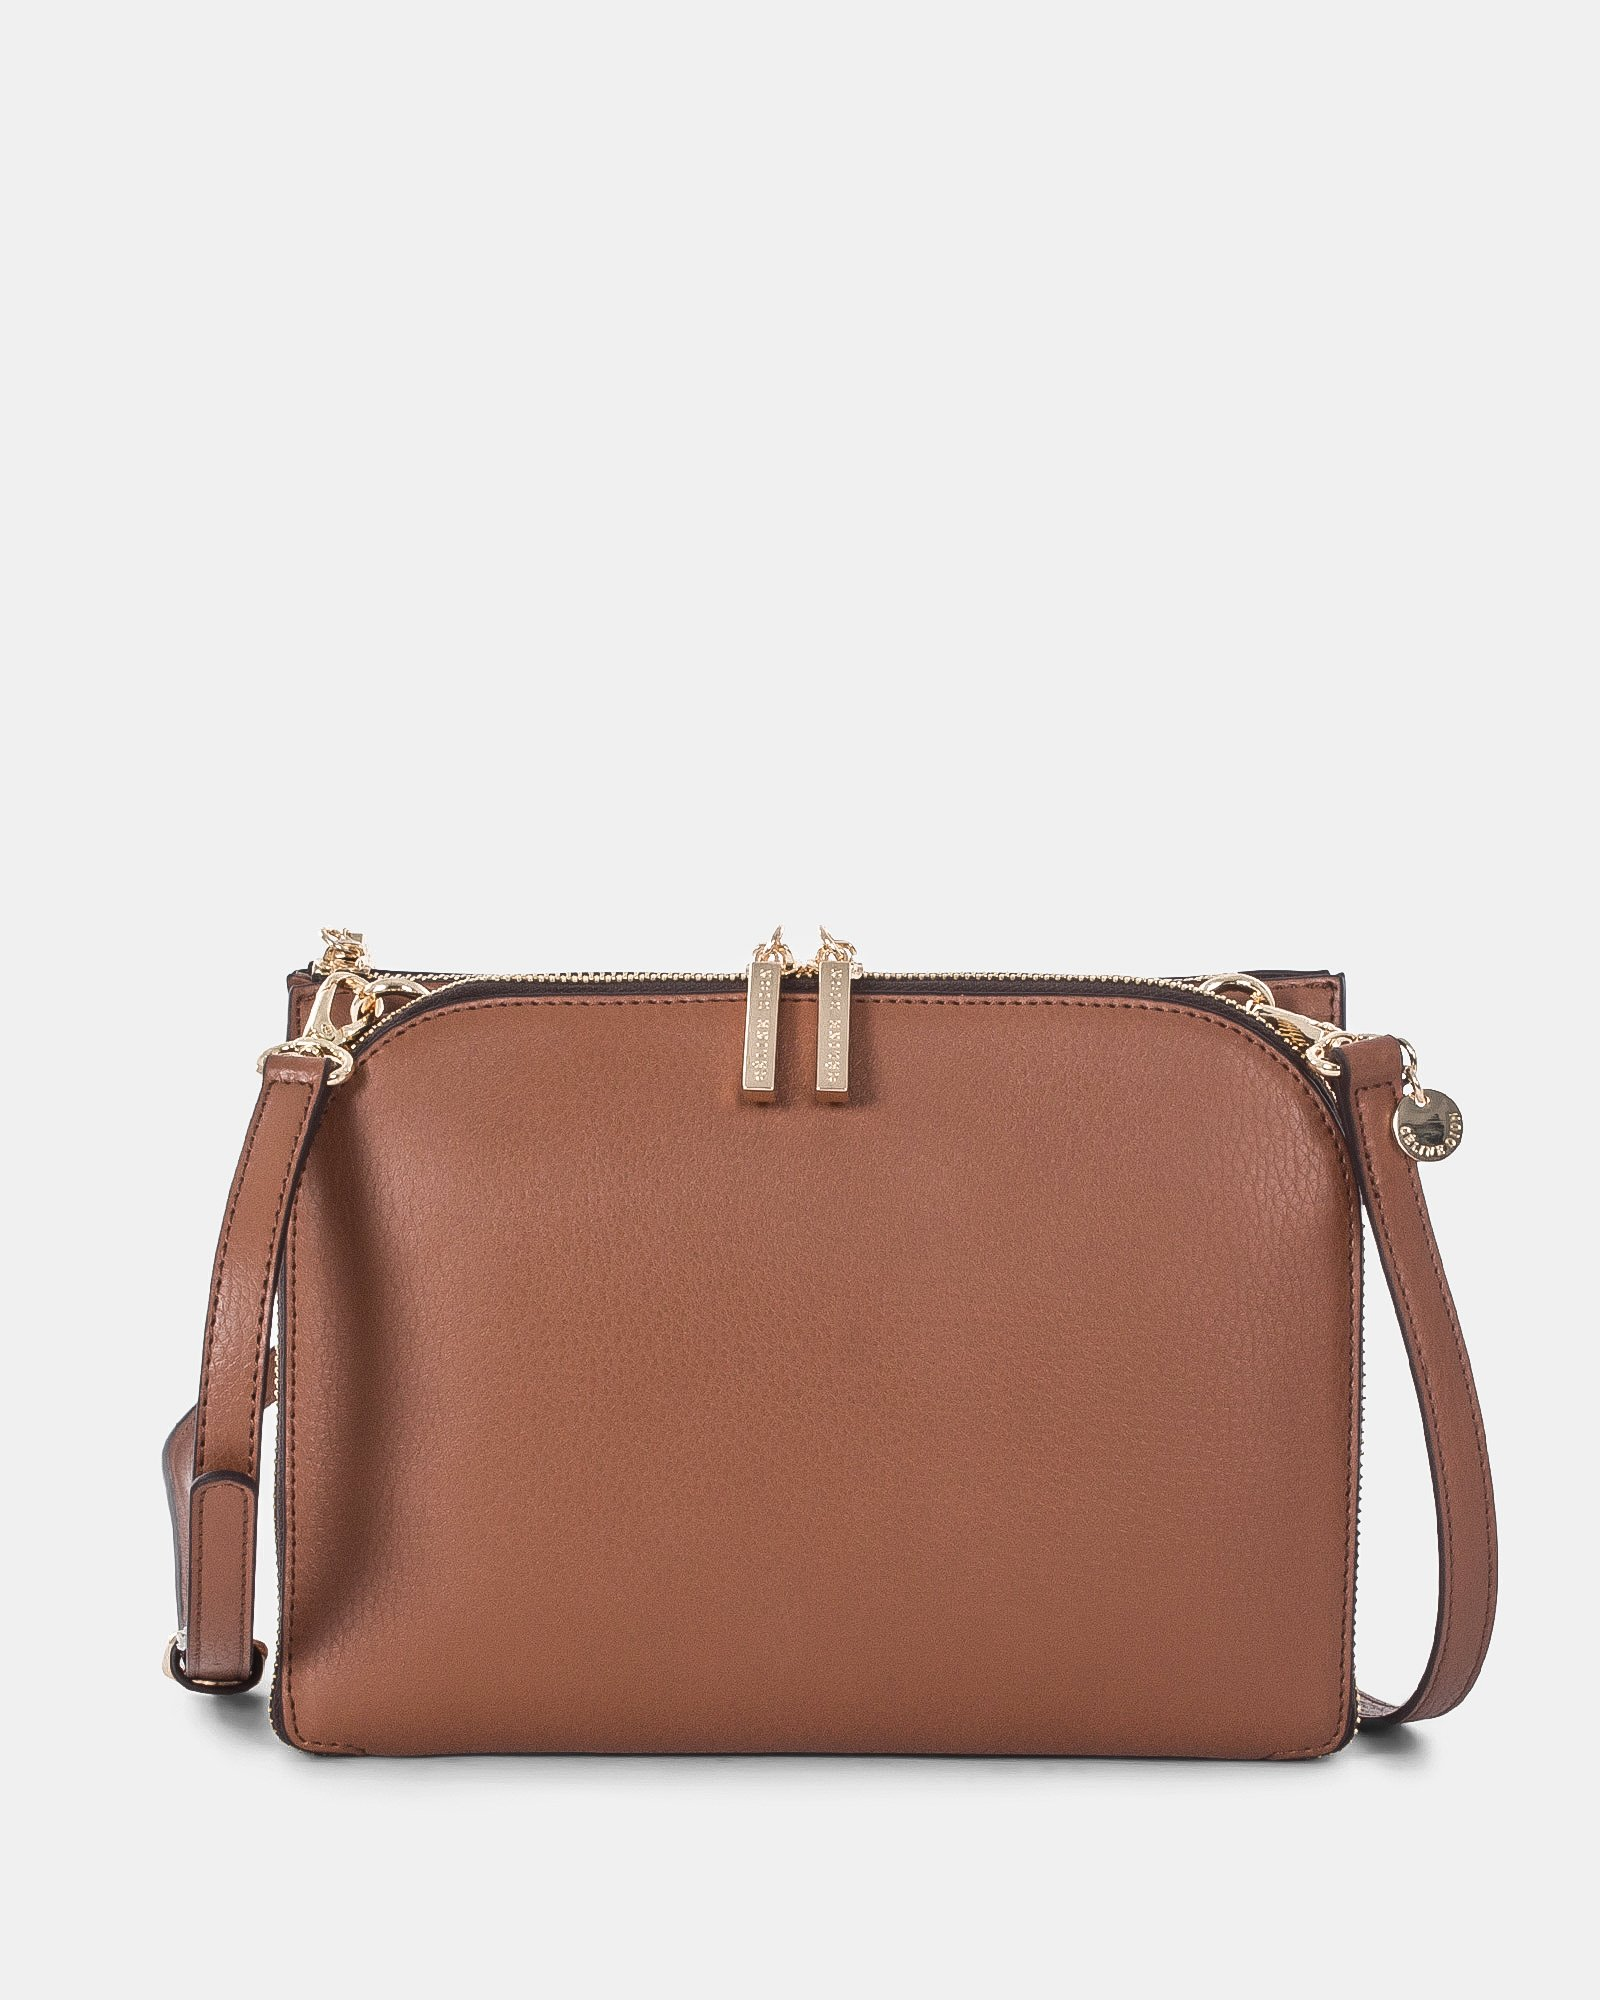 TRIAD - Crossbody with ajustable and removable strap - Tan - Céline Dion - Zoom